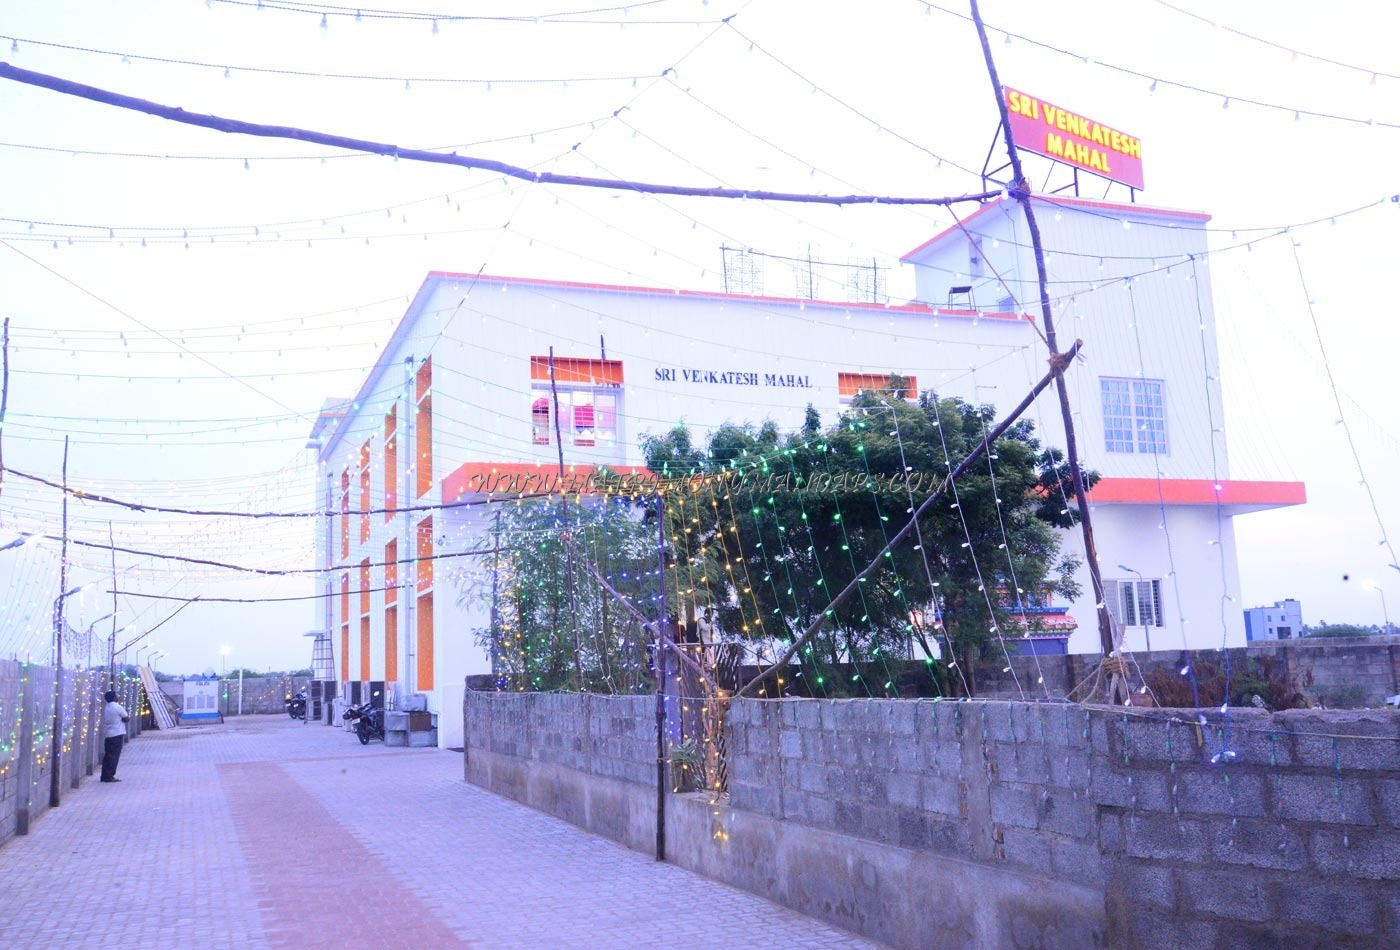 Find the availability of the Shree Venkatesh Mahal in Pallavaram, Chennai and avail special offers